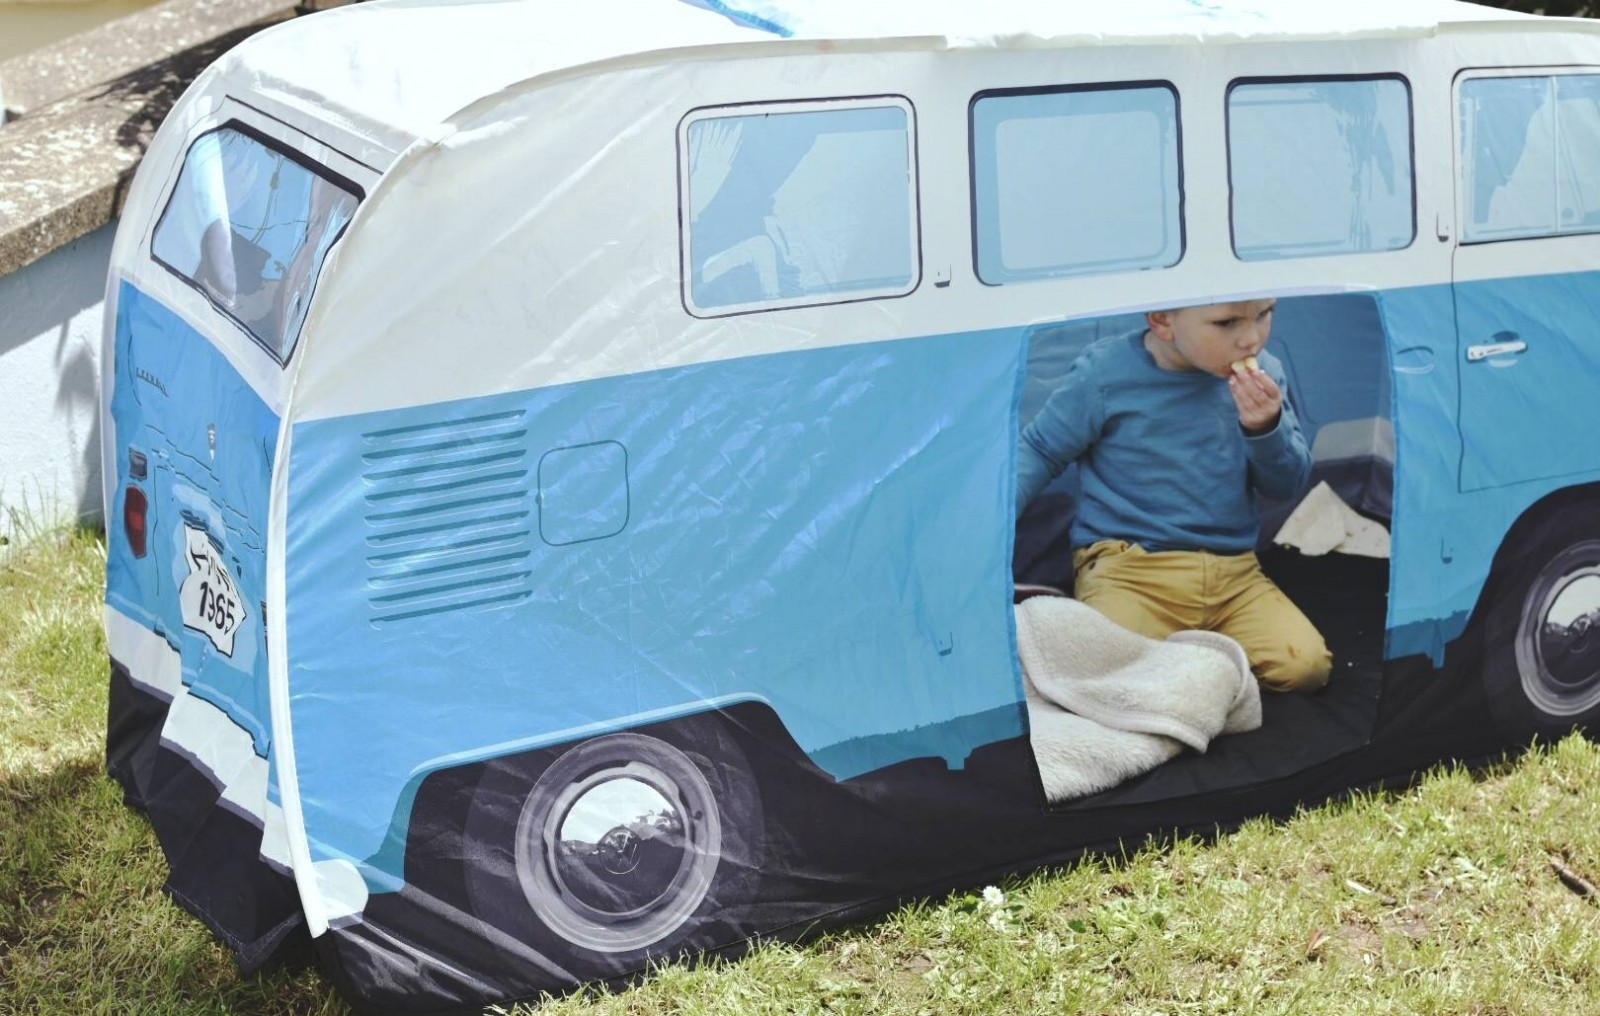 what a funky way to liven up your garden and keep your children safe, this VW camper van tent is a great hide out, sunshade and sleepover den.